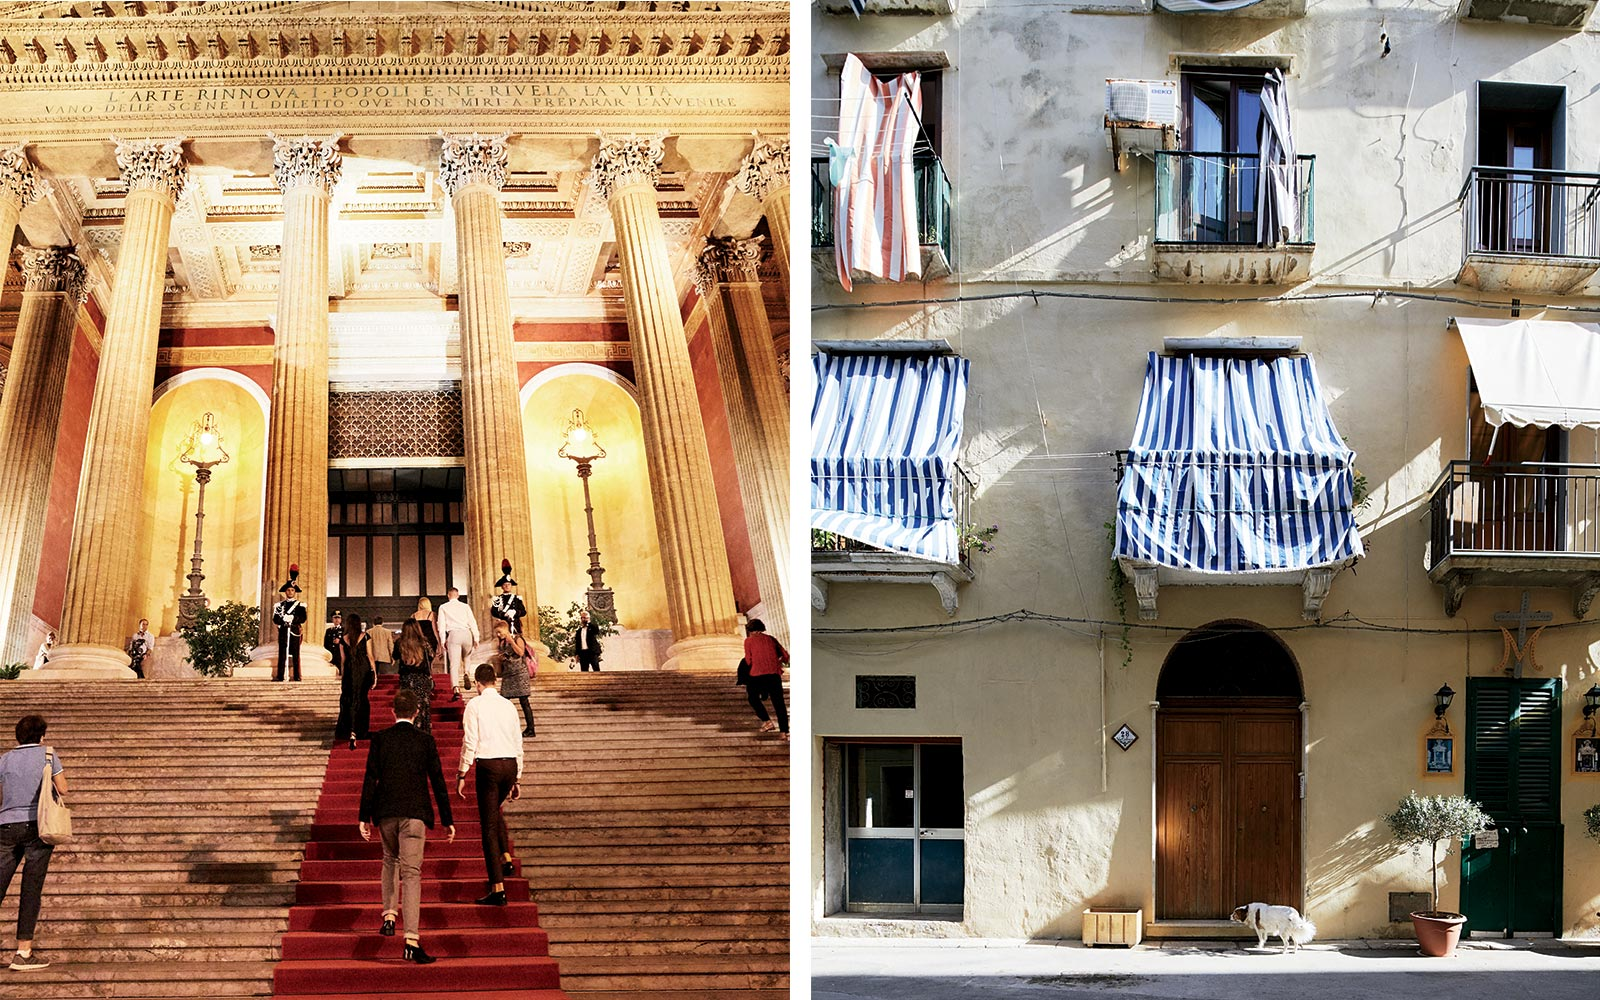 Palermo opera and homes in Trapani, Sicily